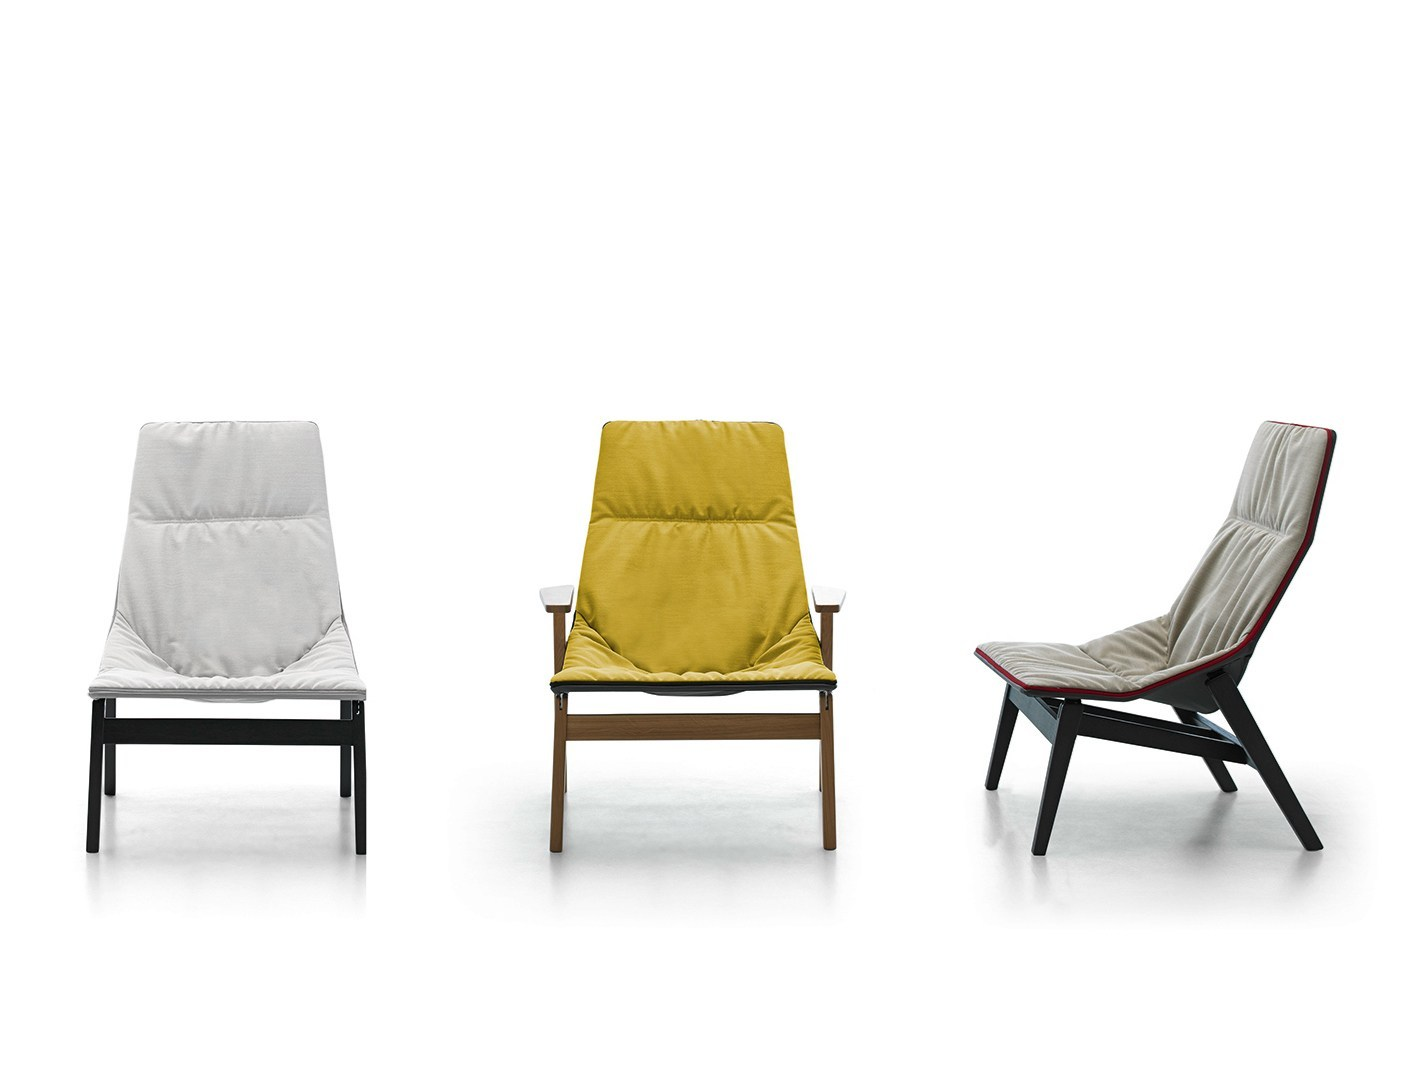 ACE WOOD Chairs by Jean-Marie Massaud for Viccarbe